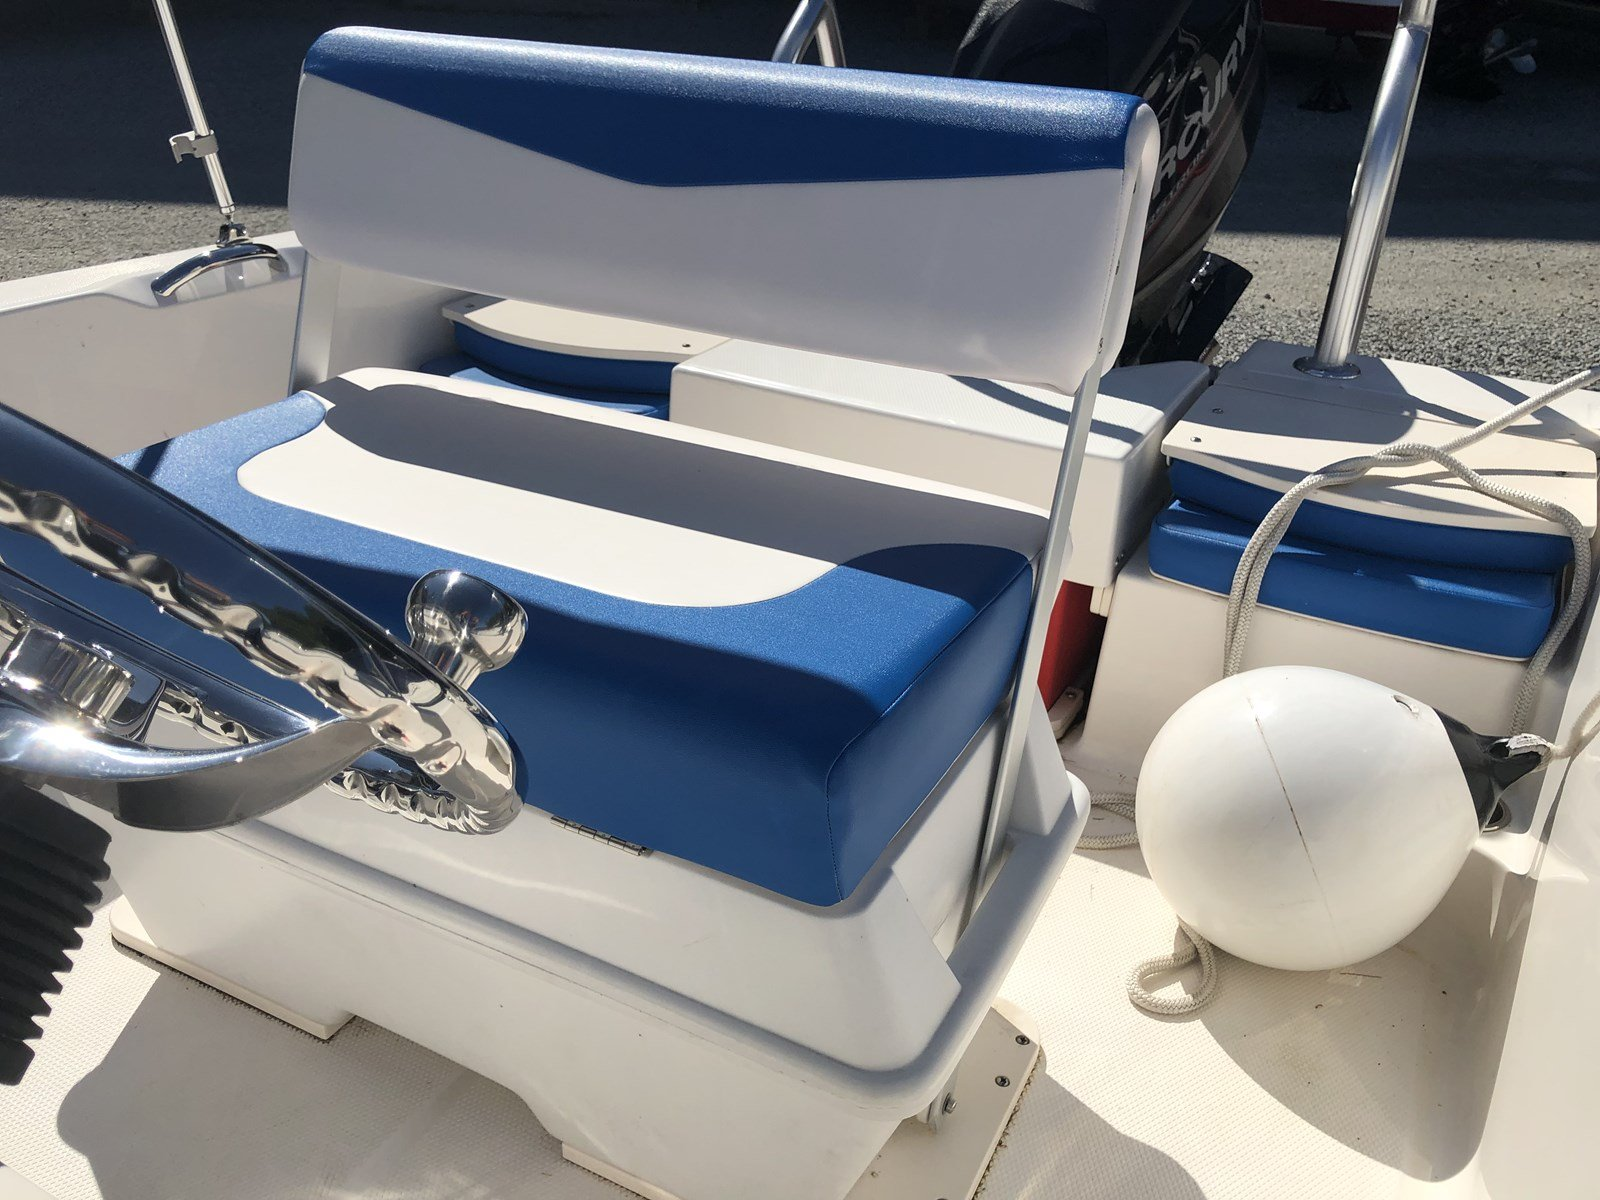 Pre-Owned 2018 Robalo R160 MERCRUISER ENGINE - VERY CLEAN